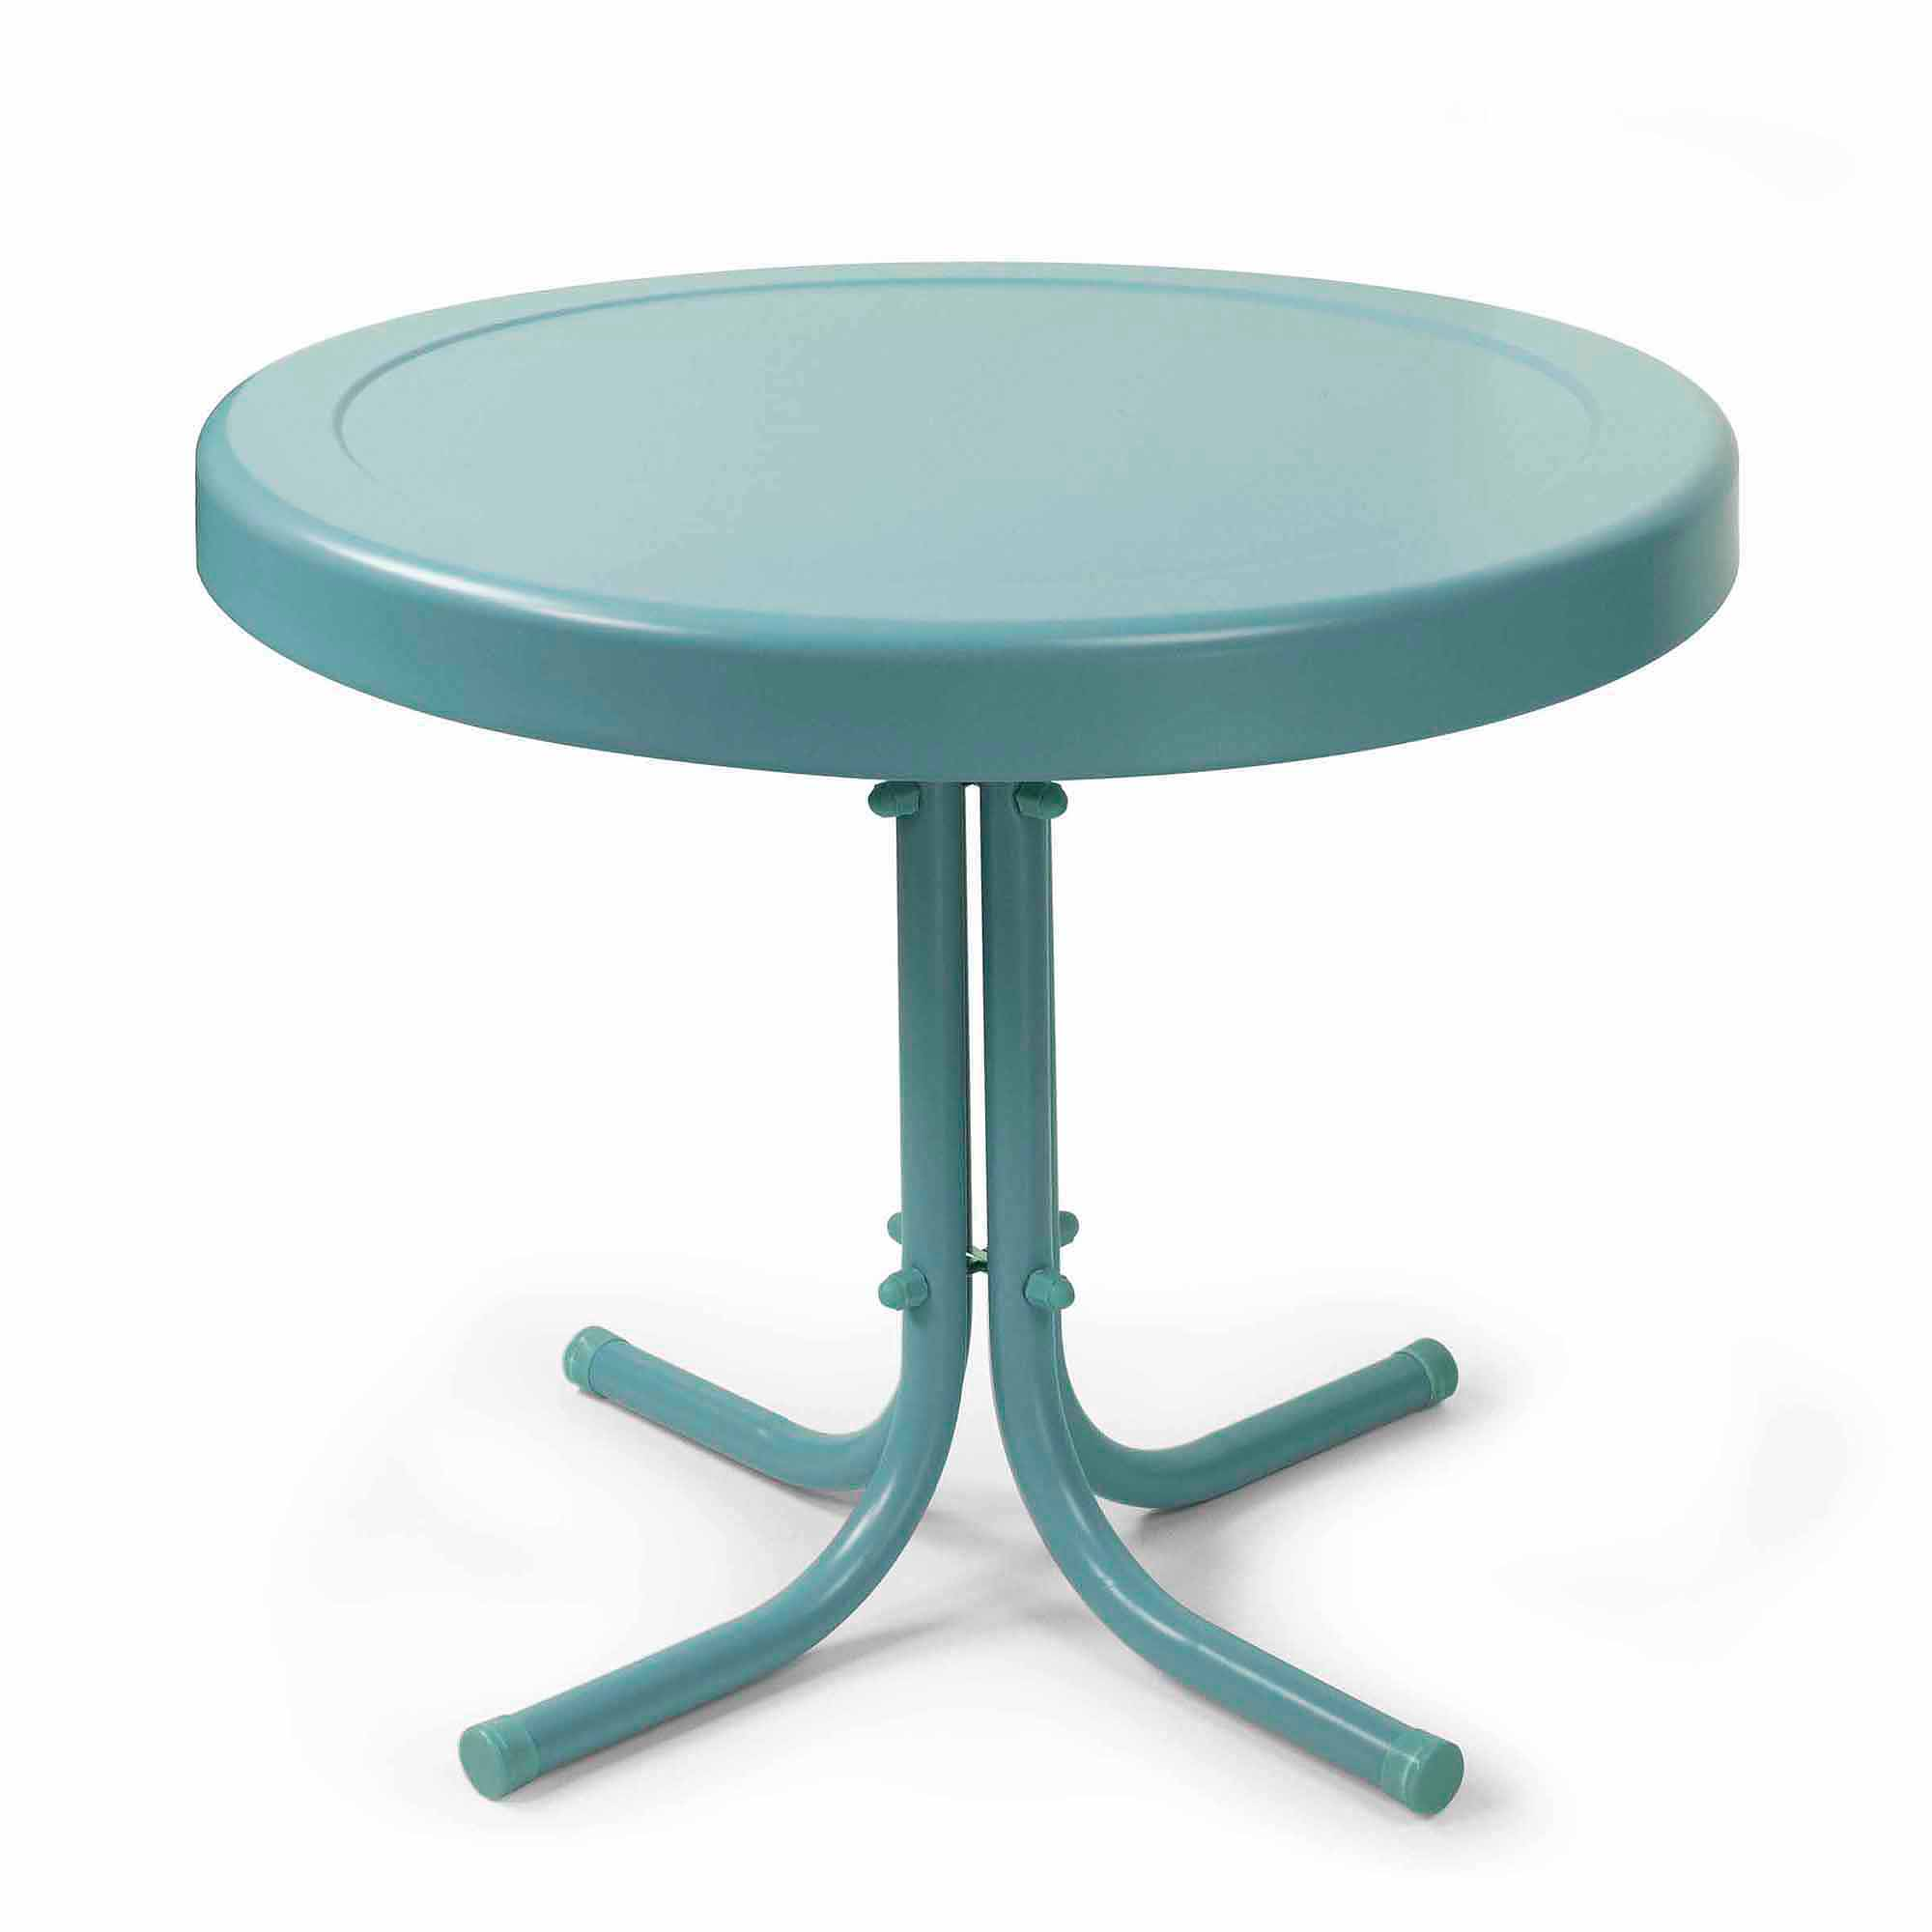 better homes and gardens colebrook outdoor glass top side table accent green kmart camping small space furniture solutions asian drum black lamp base martin home furnishings